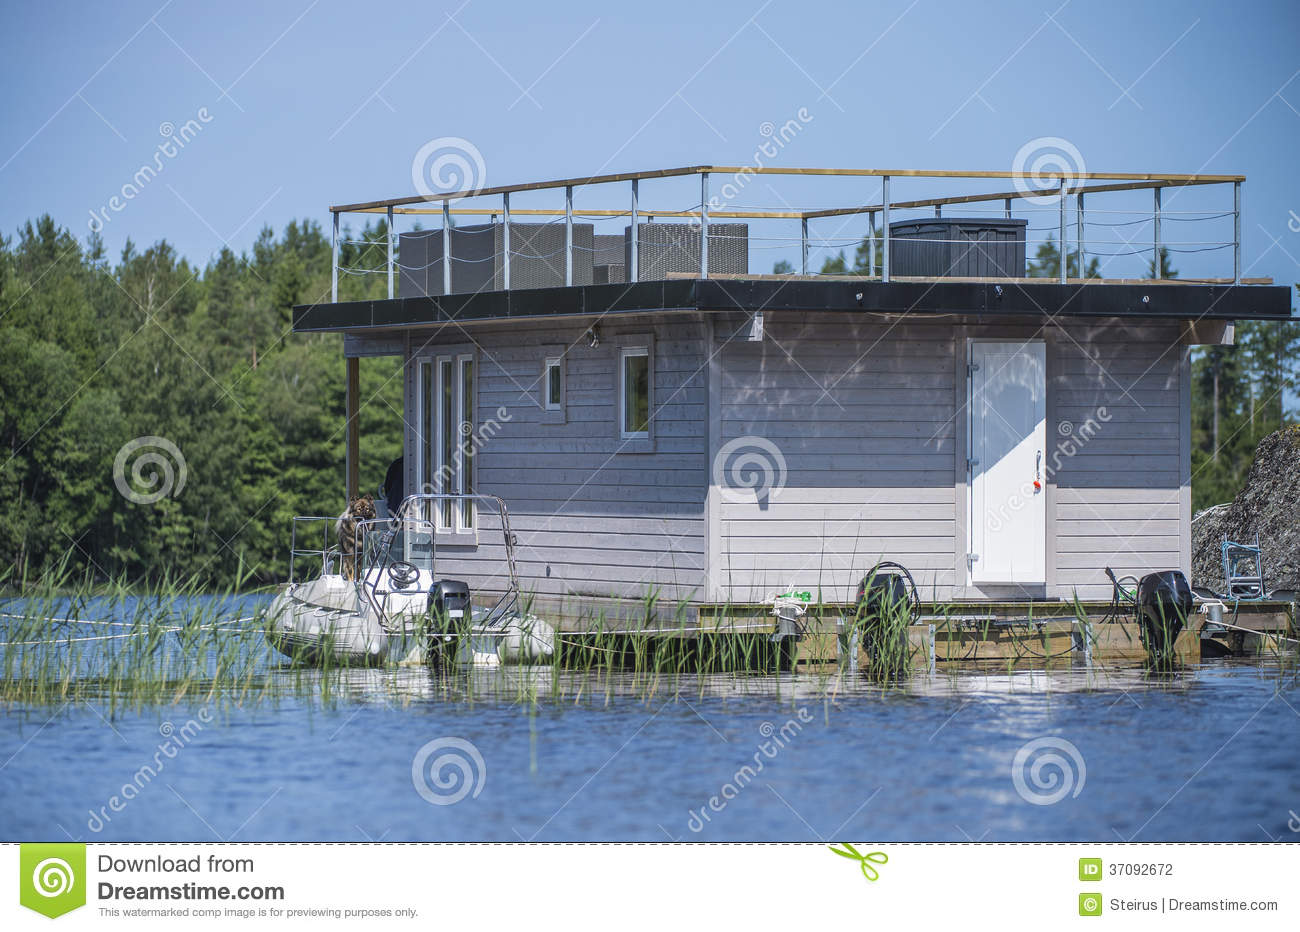 houseboat clipart - photo #39